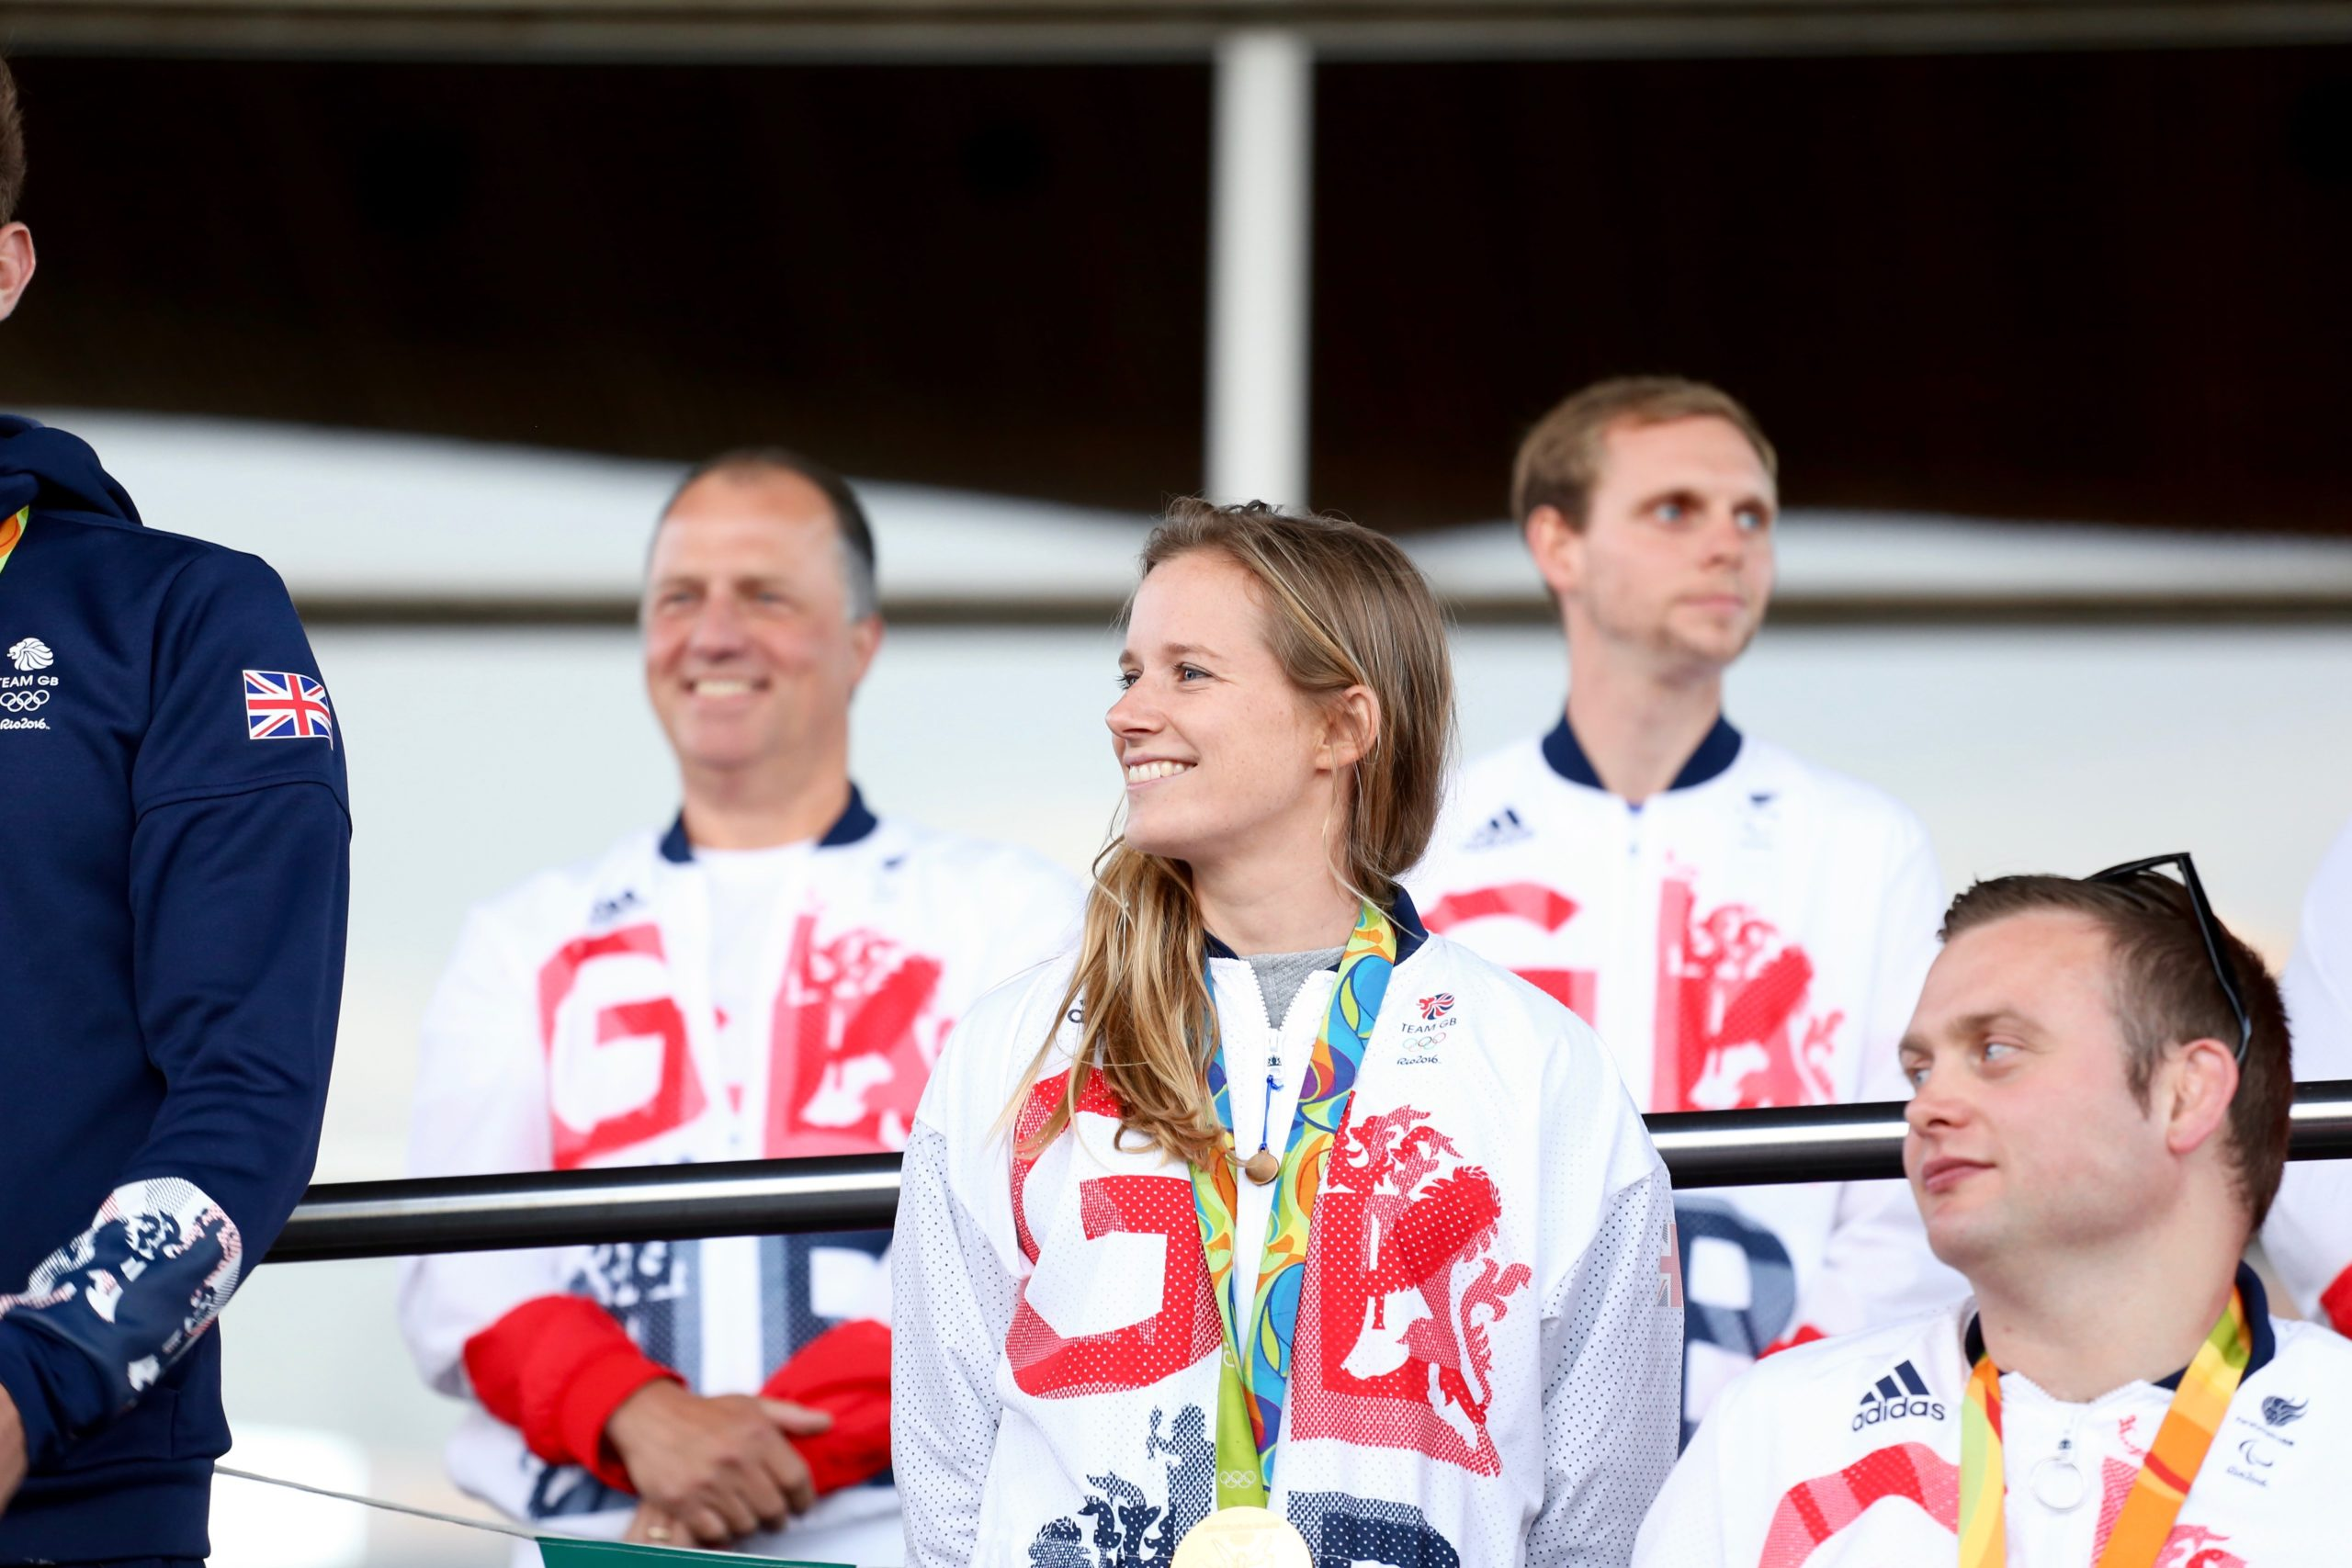 Hannah Mills returning to the United Kingdom after her 2016 Olympic title. Source: Welsh Parliament